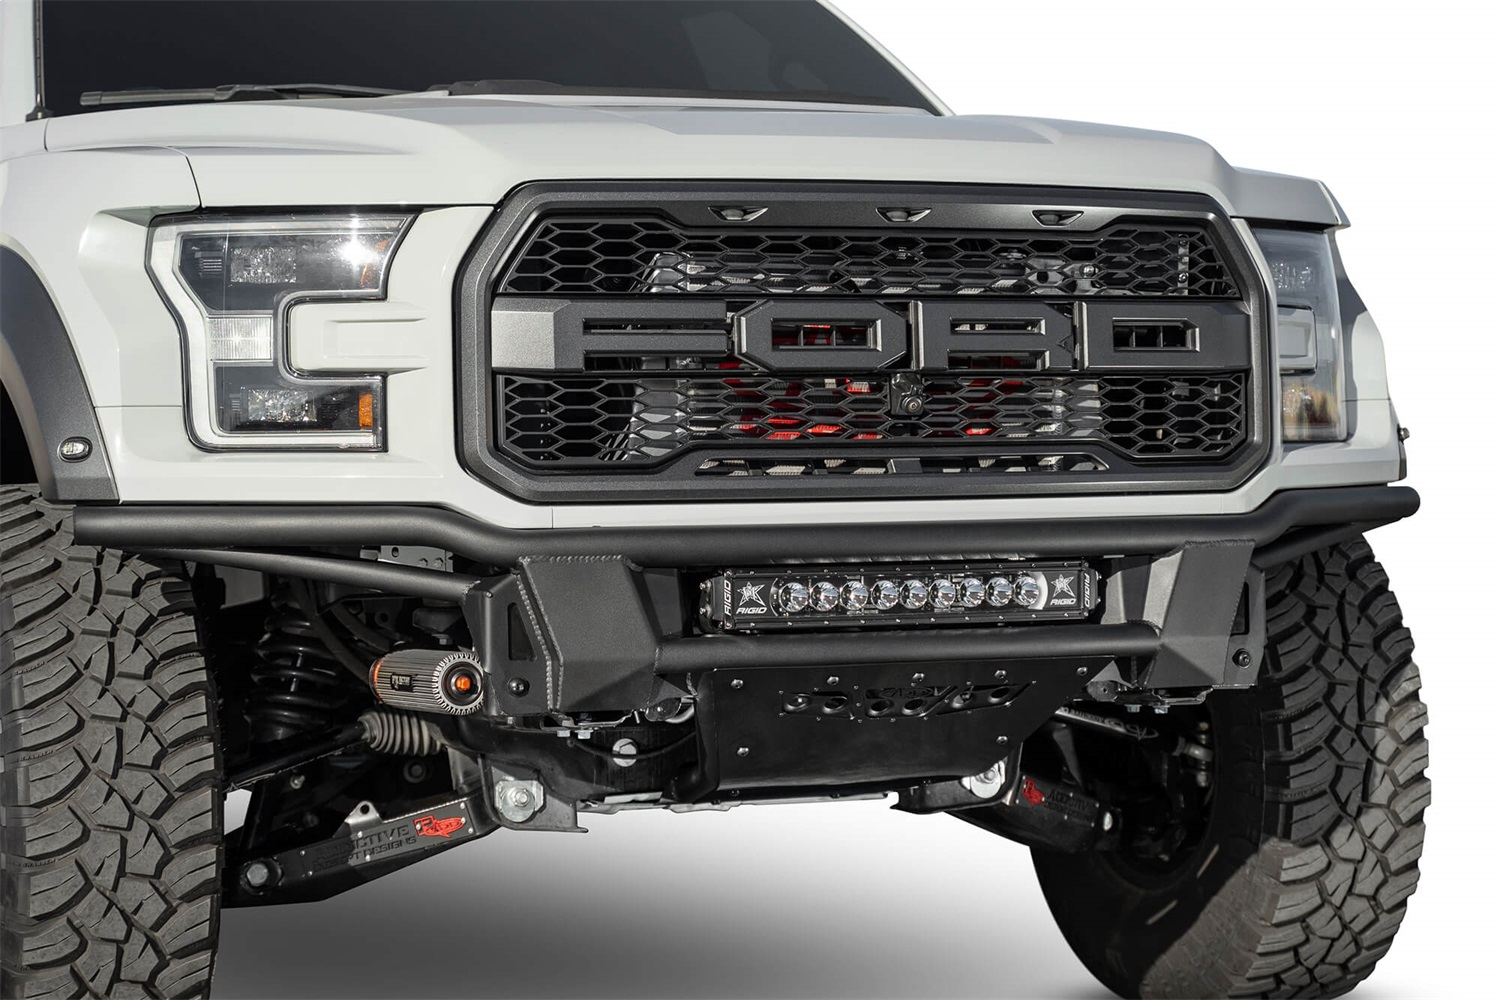 Addictive Desert Designs F118102100103 ADD PRO Front Bumper Fits 17-19 F-150